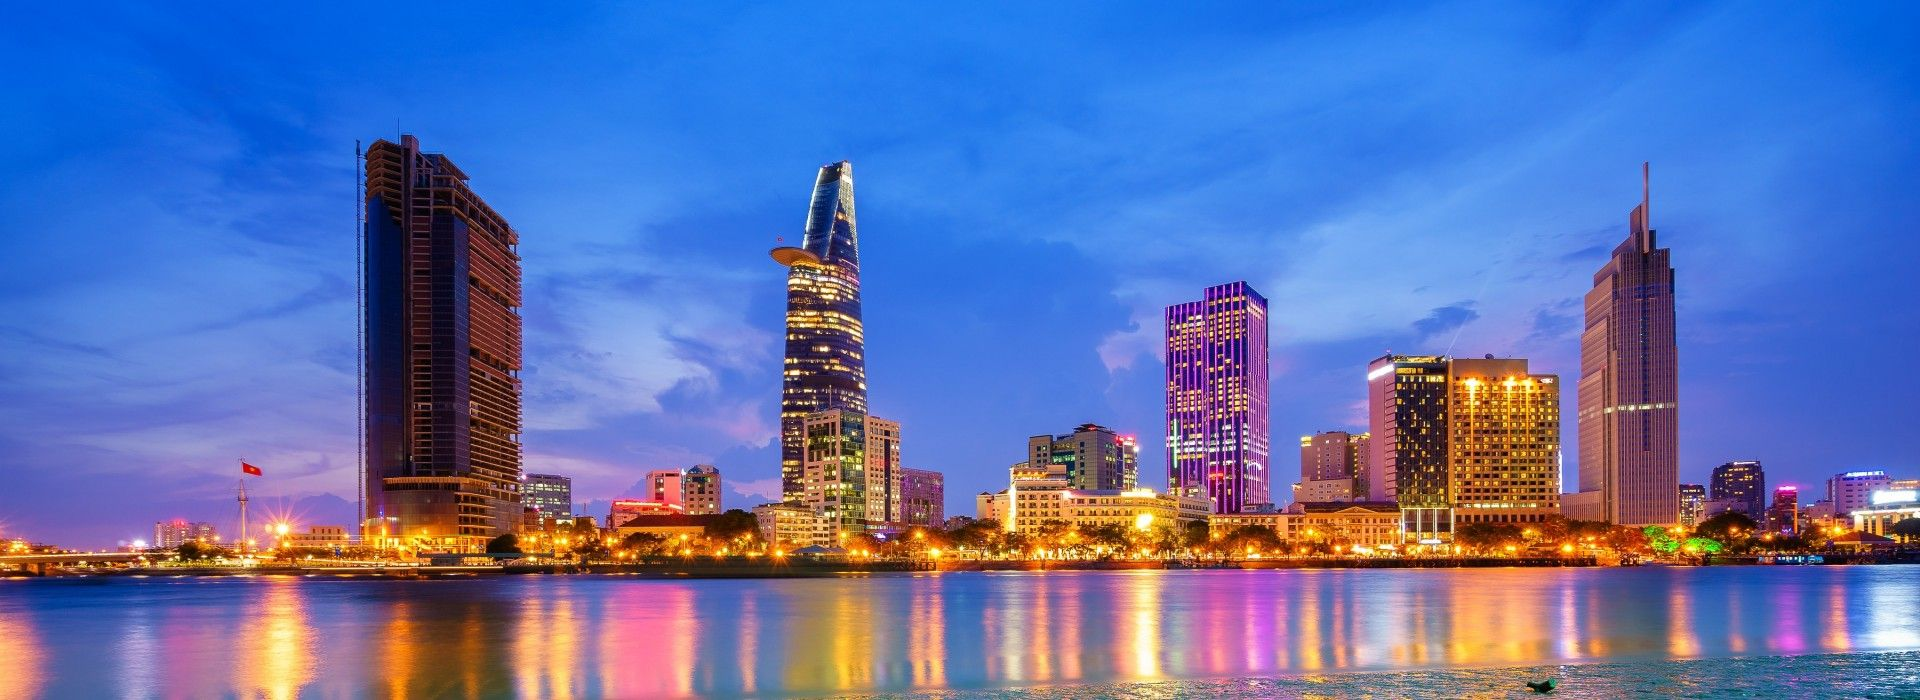 Travelling Ho Chi Minh City - Tours and Holiday Packages in Ho Chi Minh City